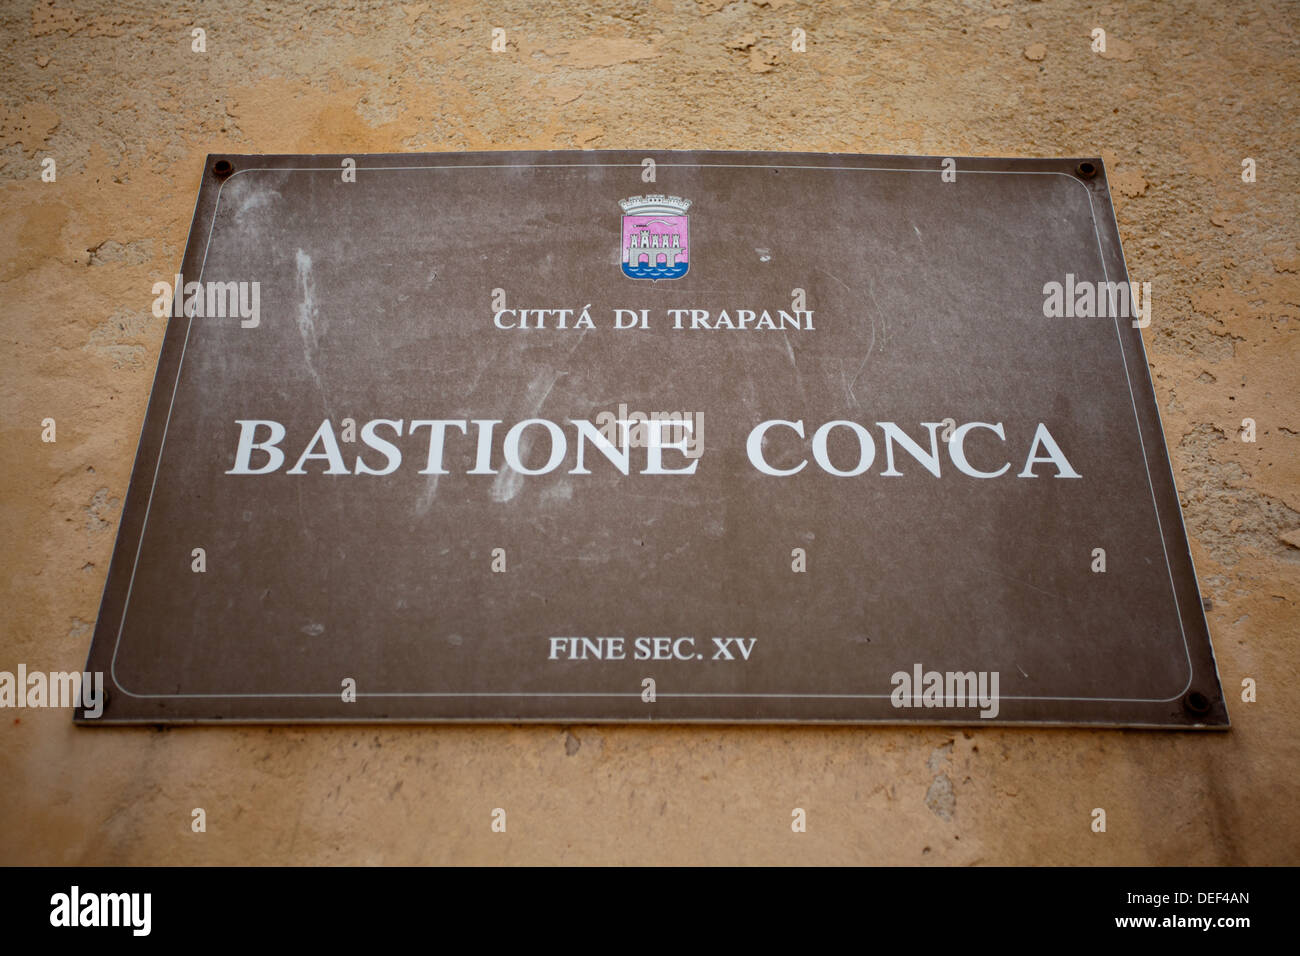 The sign for Bastione Conca in Trapani in the Province of Trapani, Sicily. - Stock Image